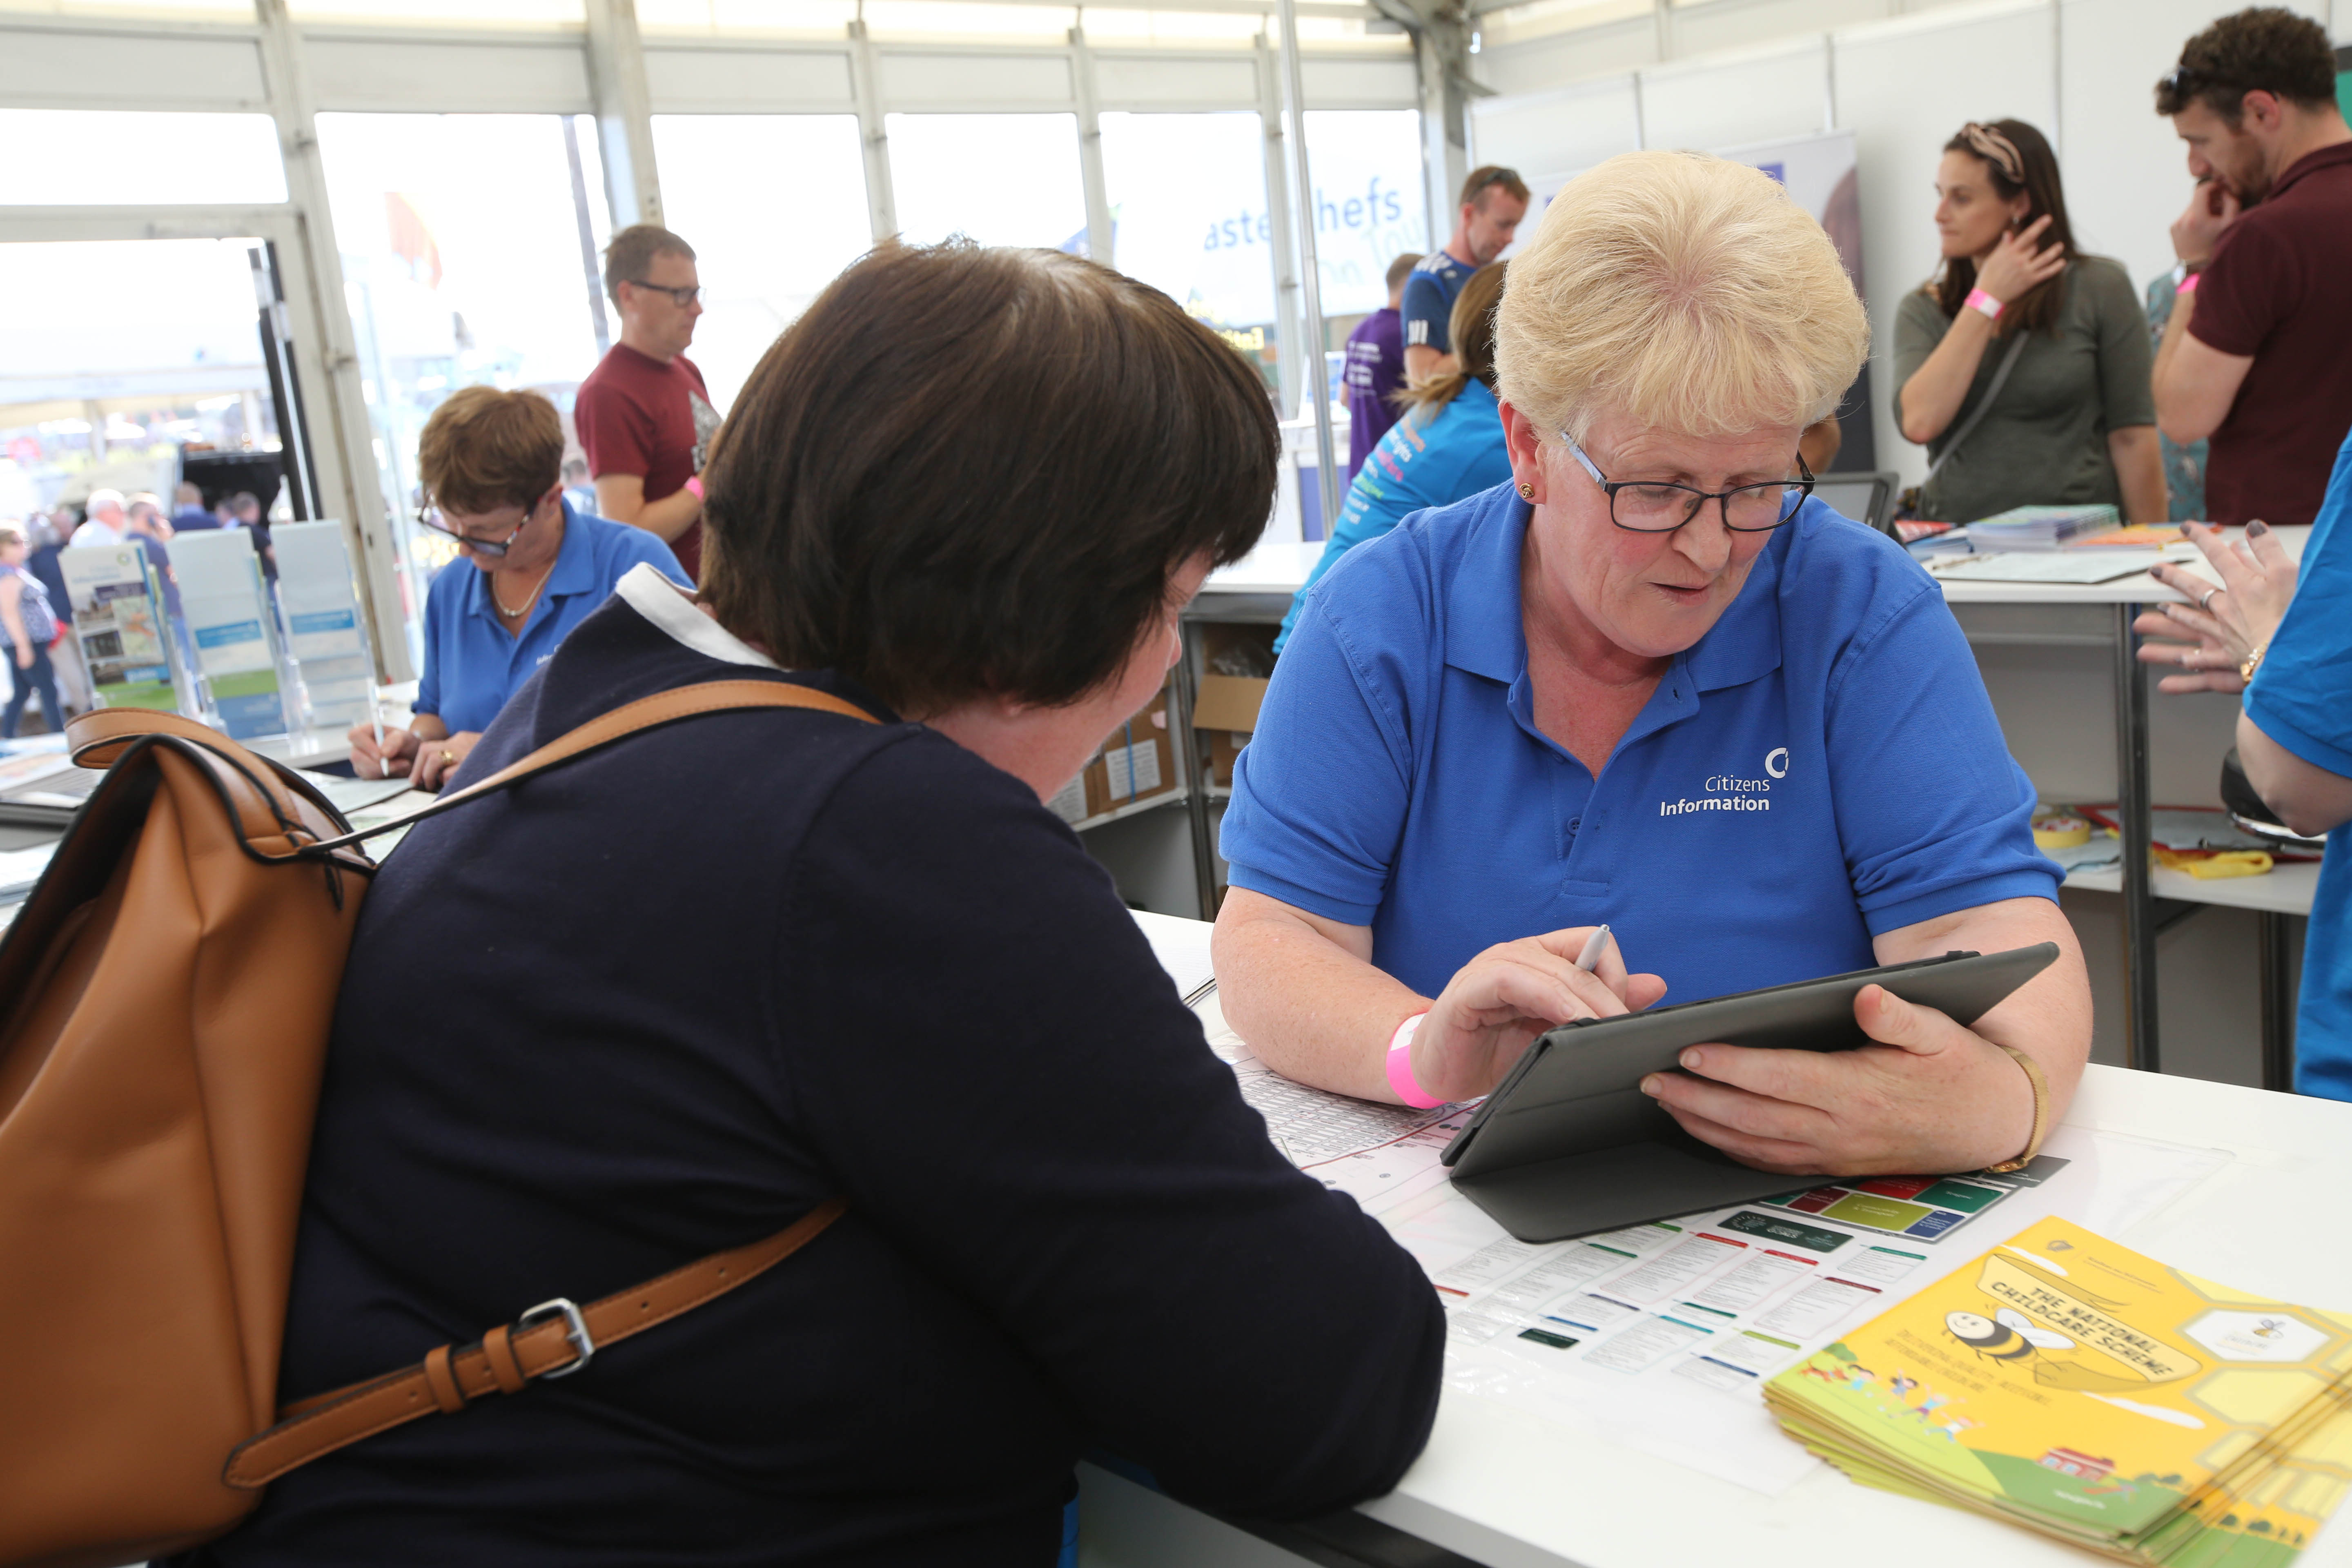 Citizens Information giving information at the National Ploughing Championships.